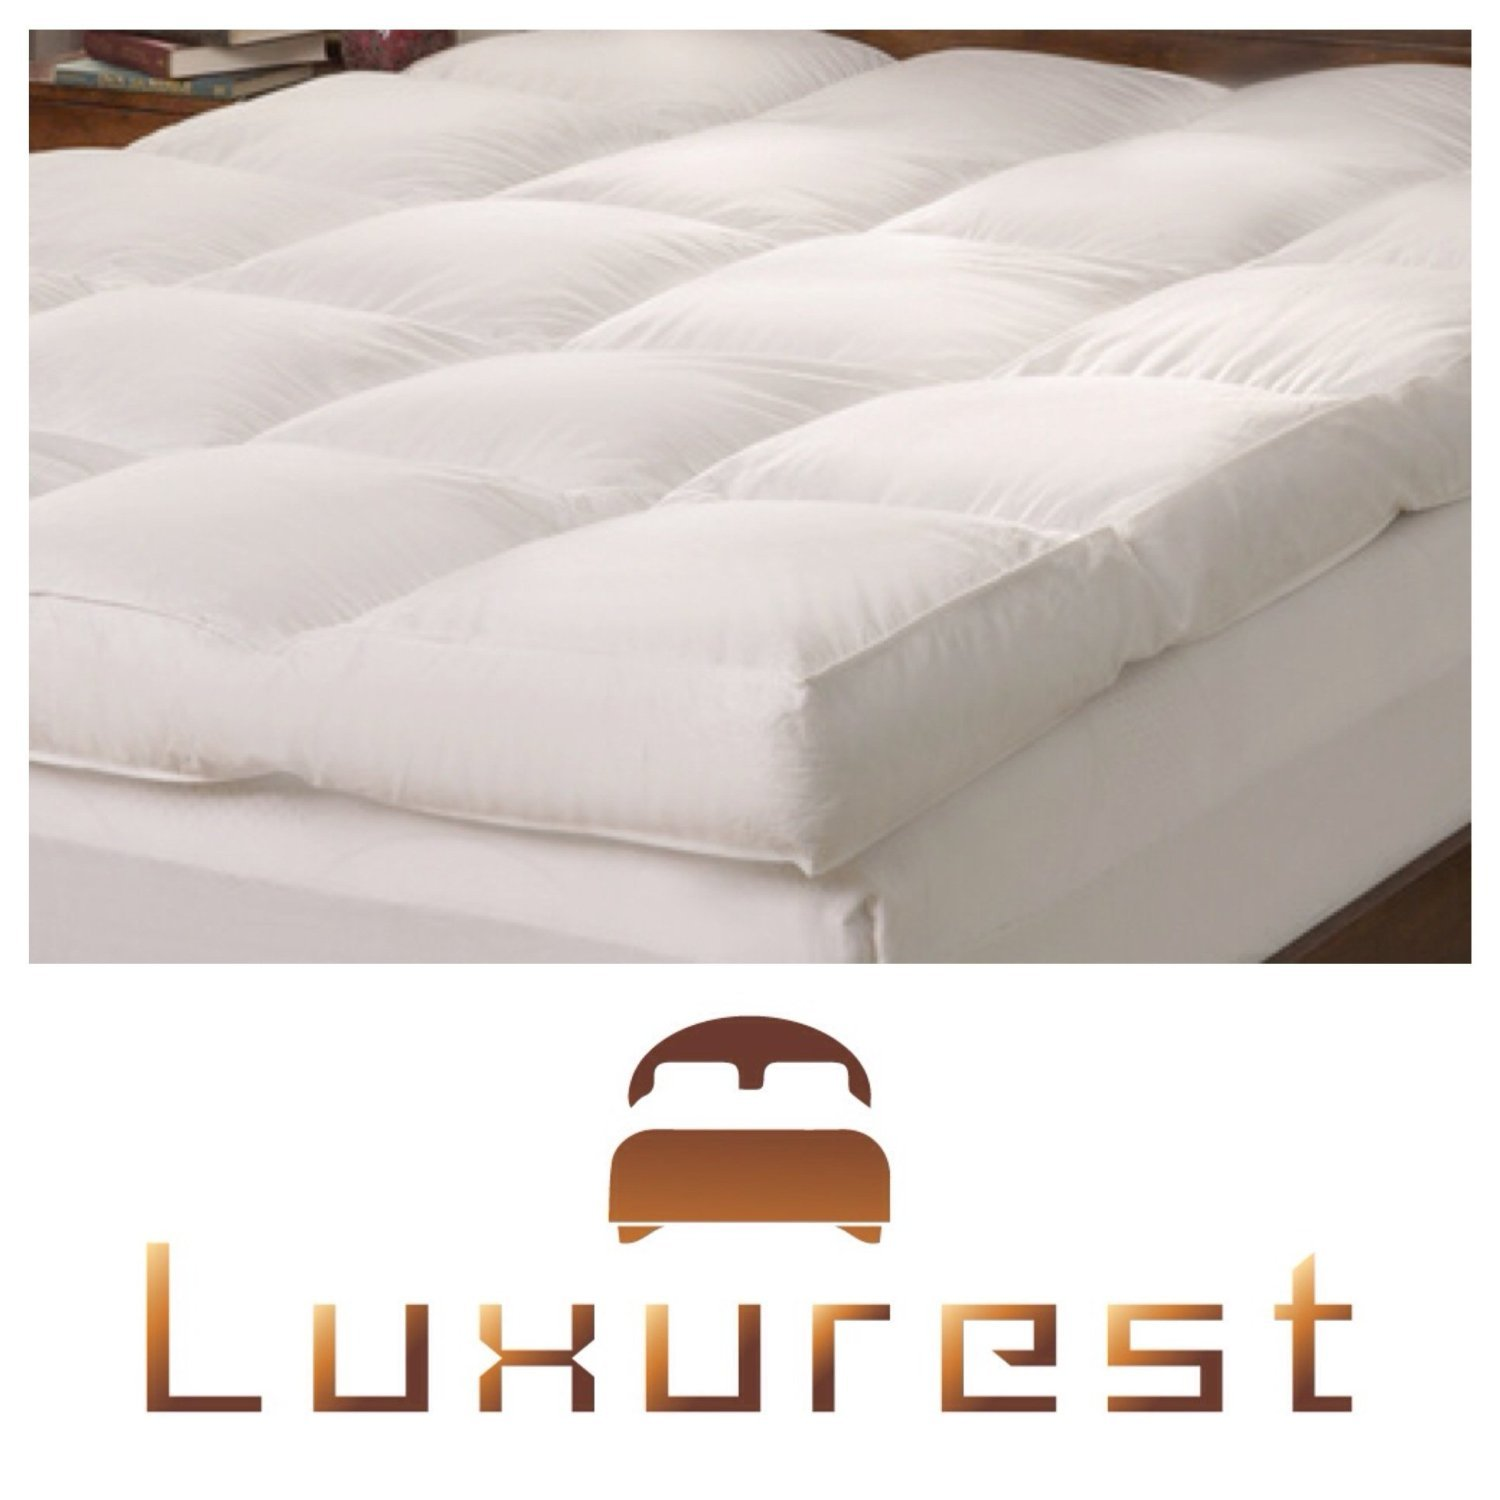 Feather Bed | Pillow Top Mattress Topper | 5 Inch | Free Cover Included | This Luxurious Mattress Pad Is the Perfect Addition to Your Current Mattress. (King) by LuxurestLLC